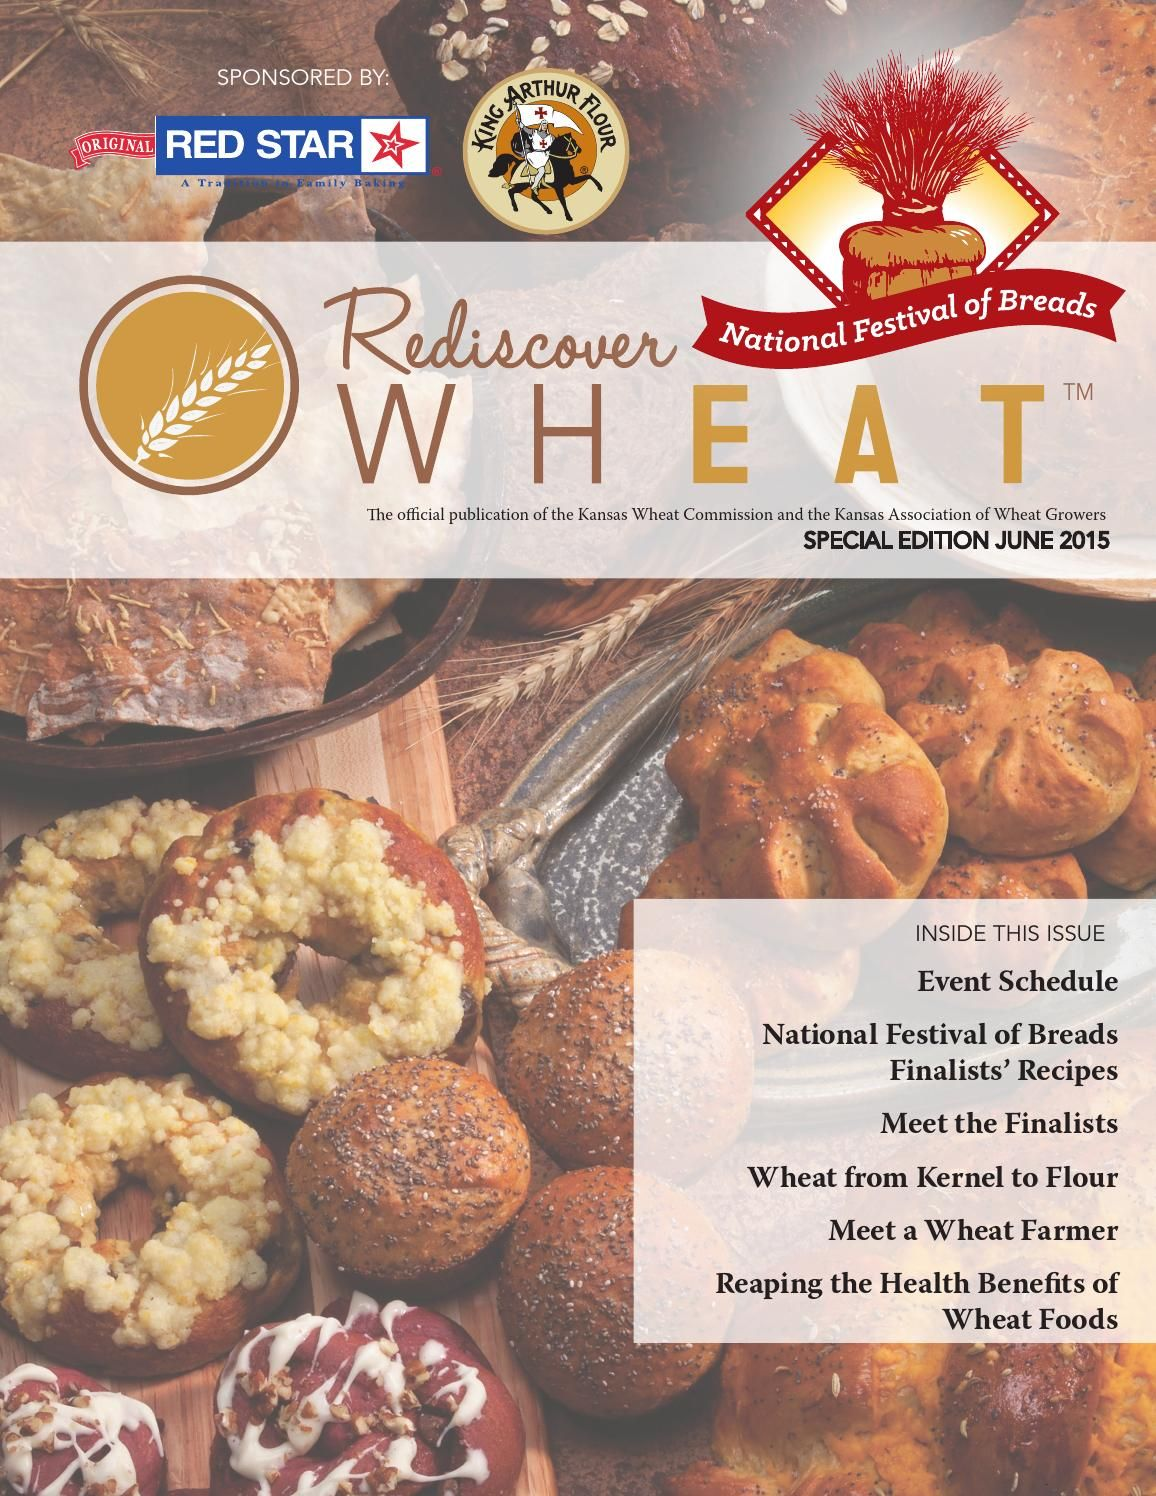 Rediscover Wheat - June 2015 Special Edition The official publication of the Kansas Association of Wheat Growers (KAWG) and the Kansas Wheat Commission (KWC). Special National Festival of Breads edition.